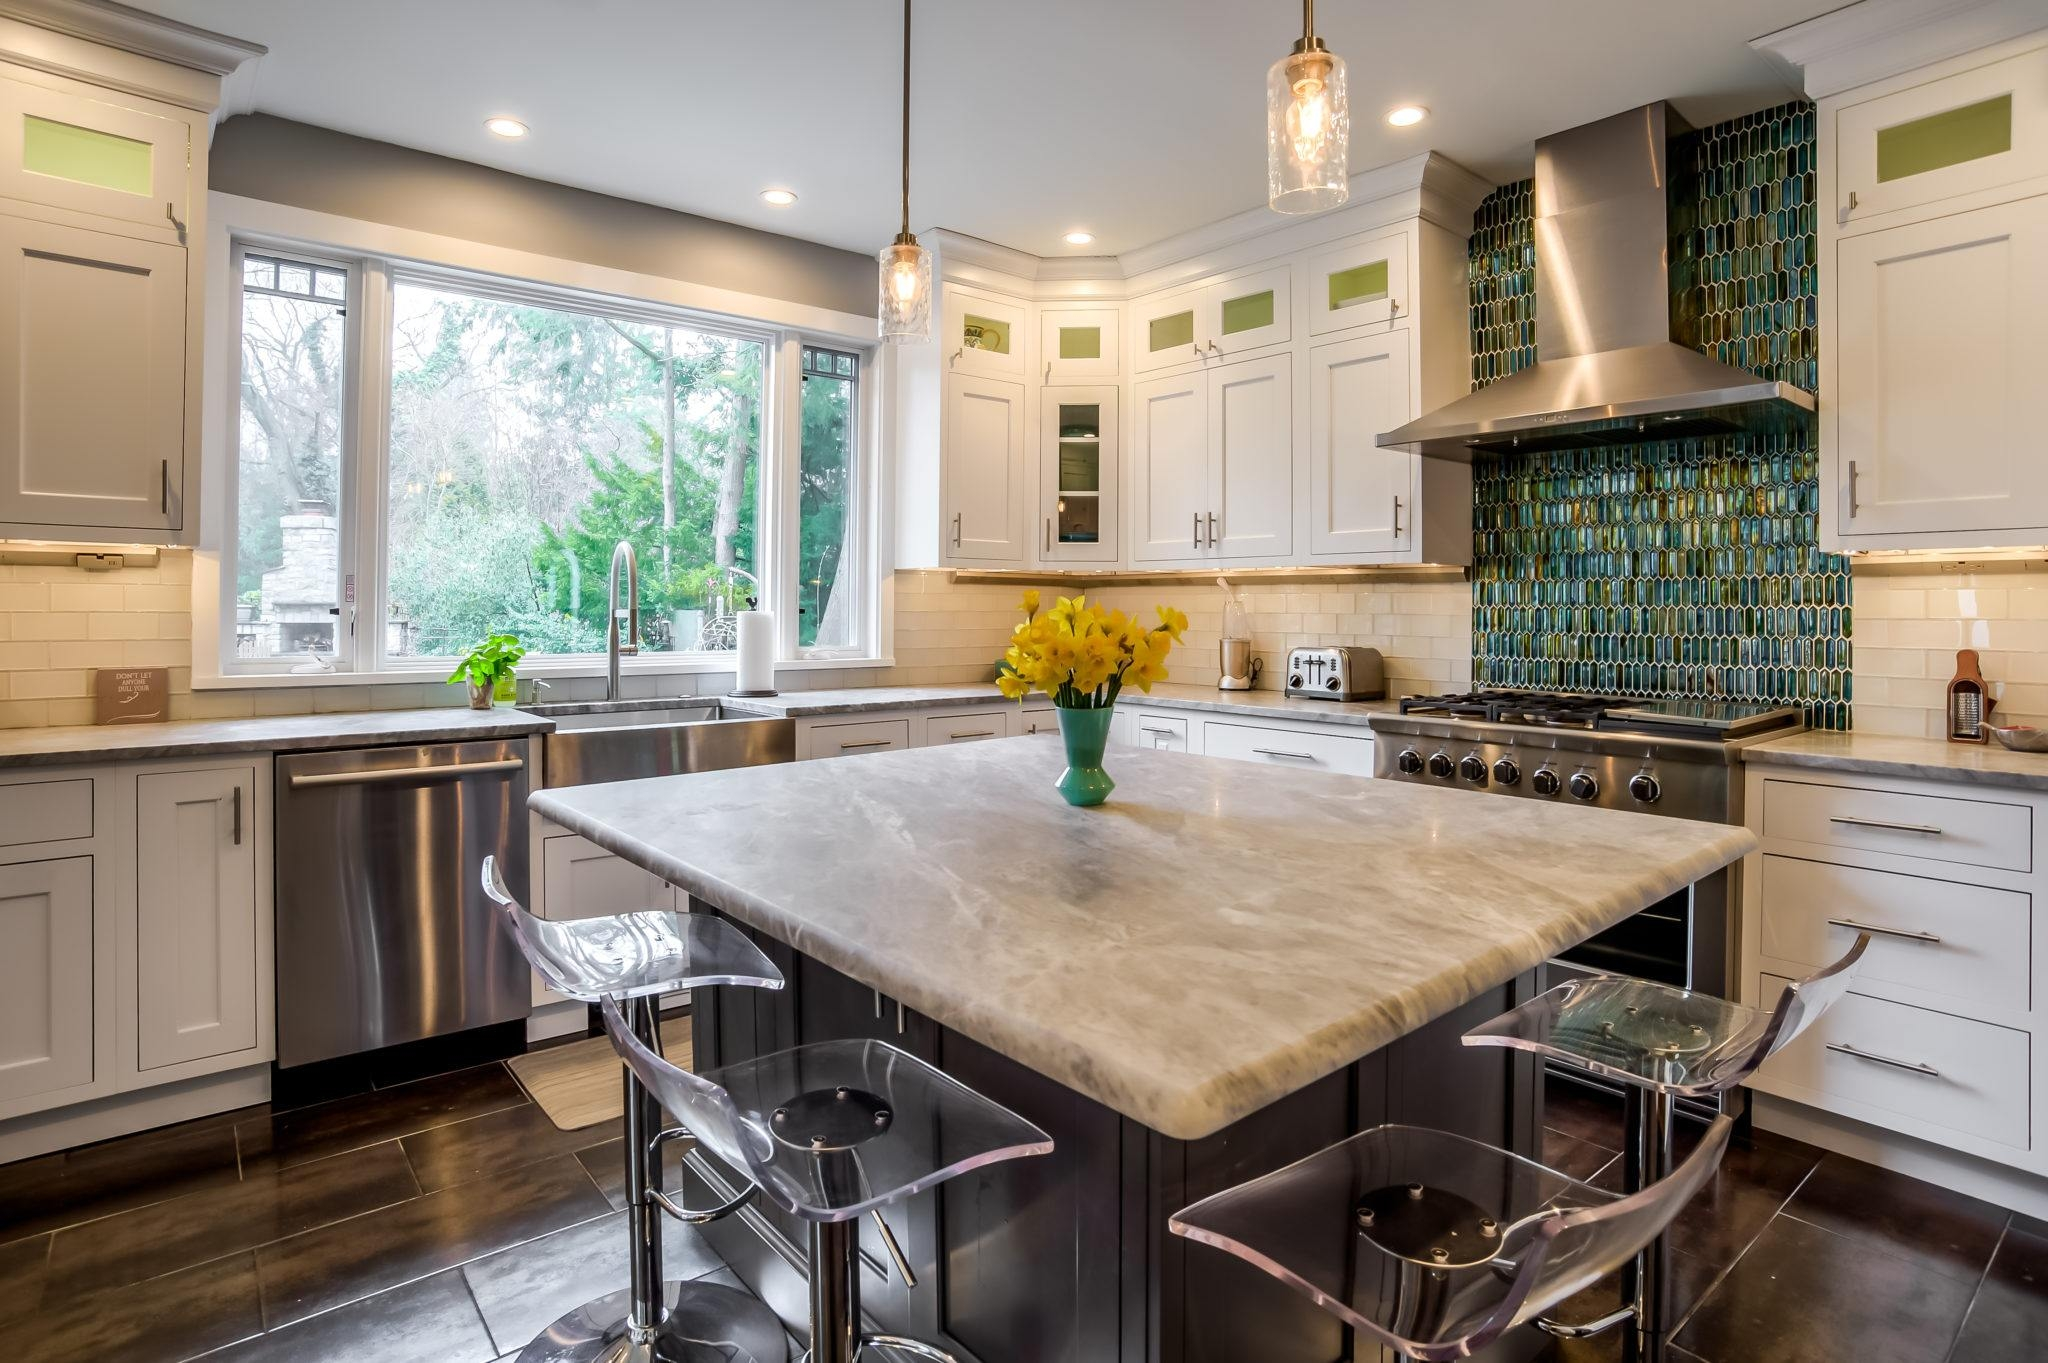 7 Photos Diamond Kitchen Cabinets Vs Kraftmaid And Review ...